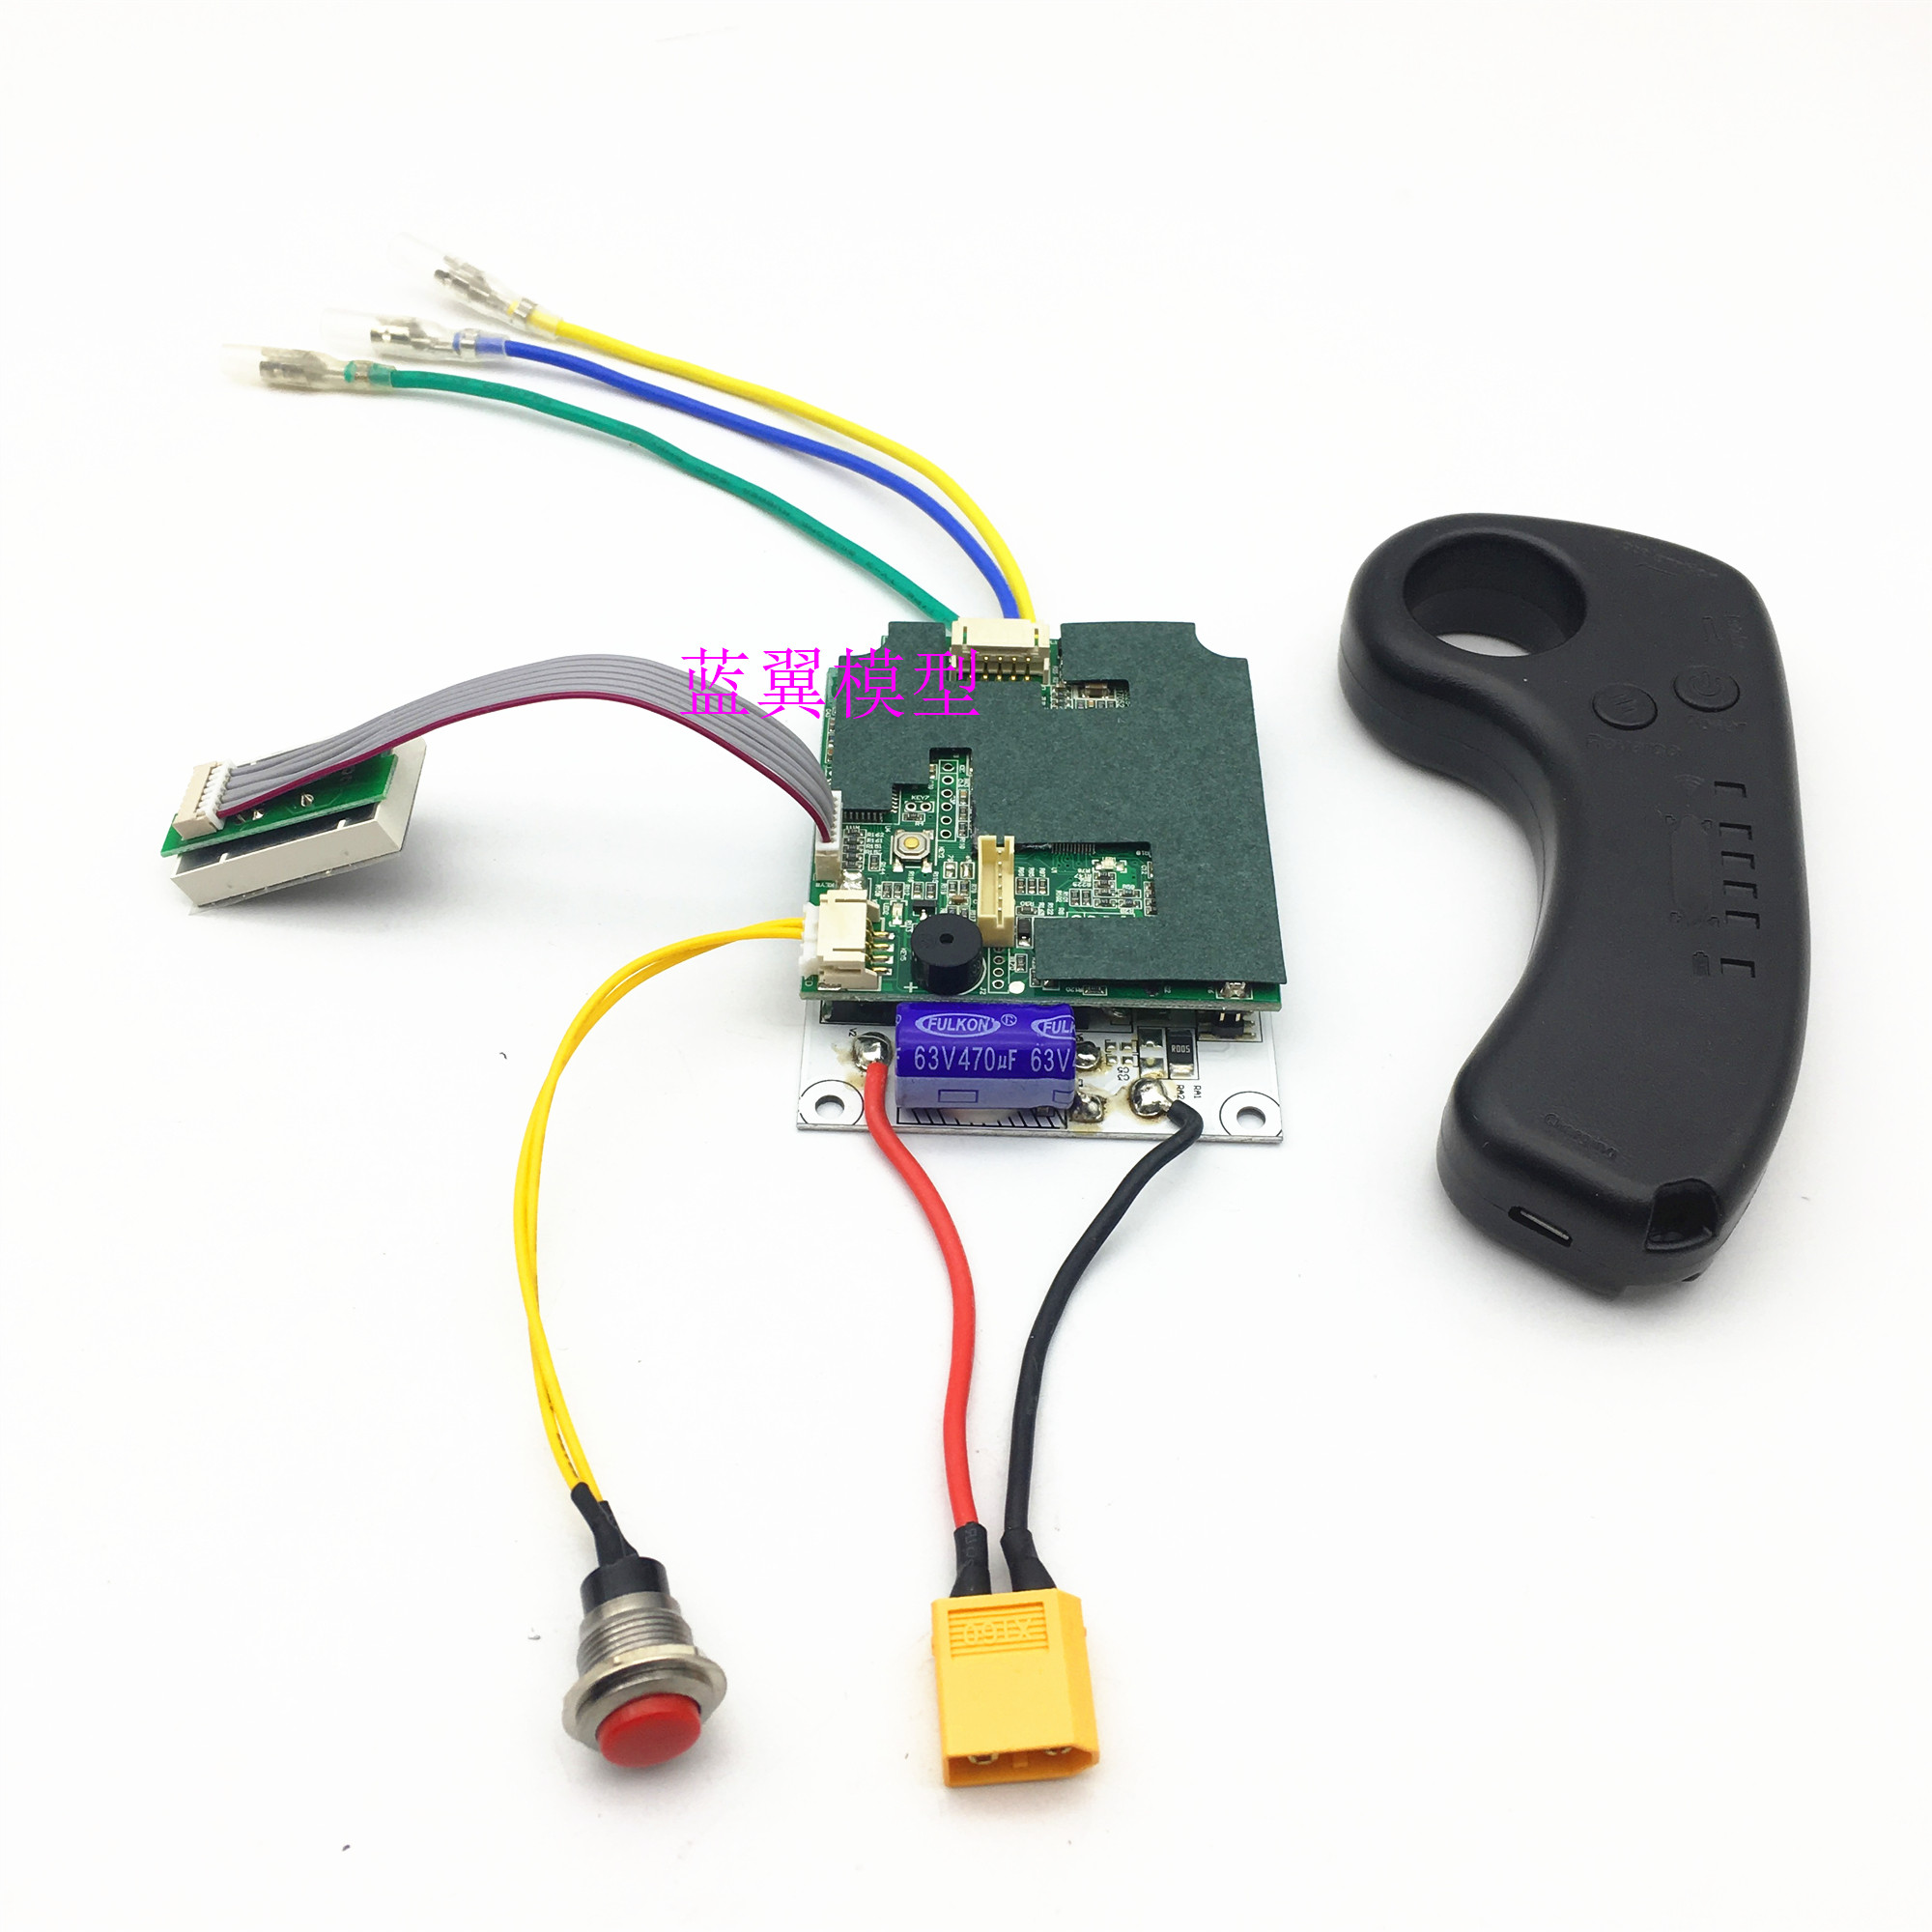 Wireless remote control electric scooter controller motor motor control board hub ESC single drive 6s/24V 7s/29.4V 10s/36VWireless remote control electric scooter controller motor motor control board hub ESC single drive 6s/24V 7s/29.4V 10s/36V